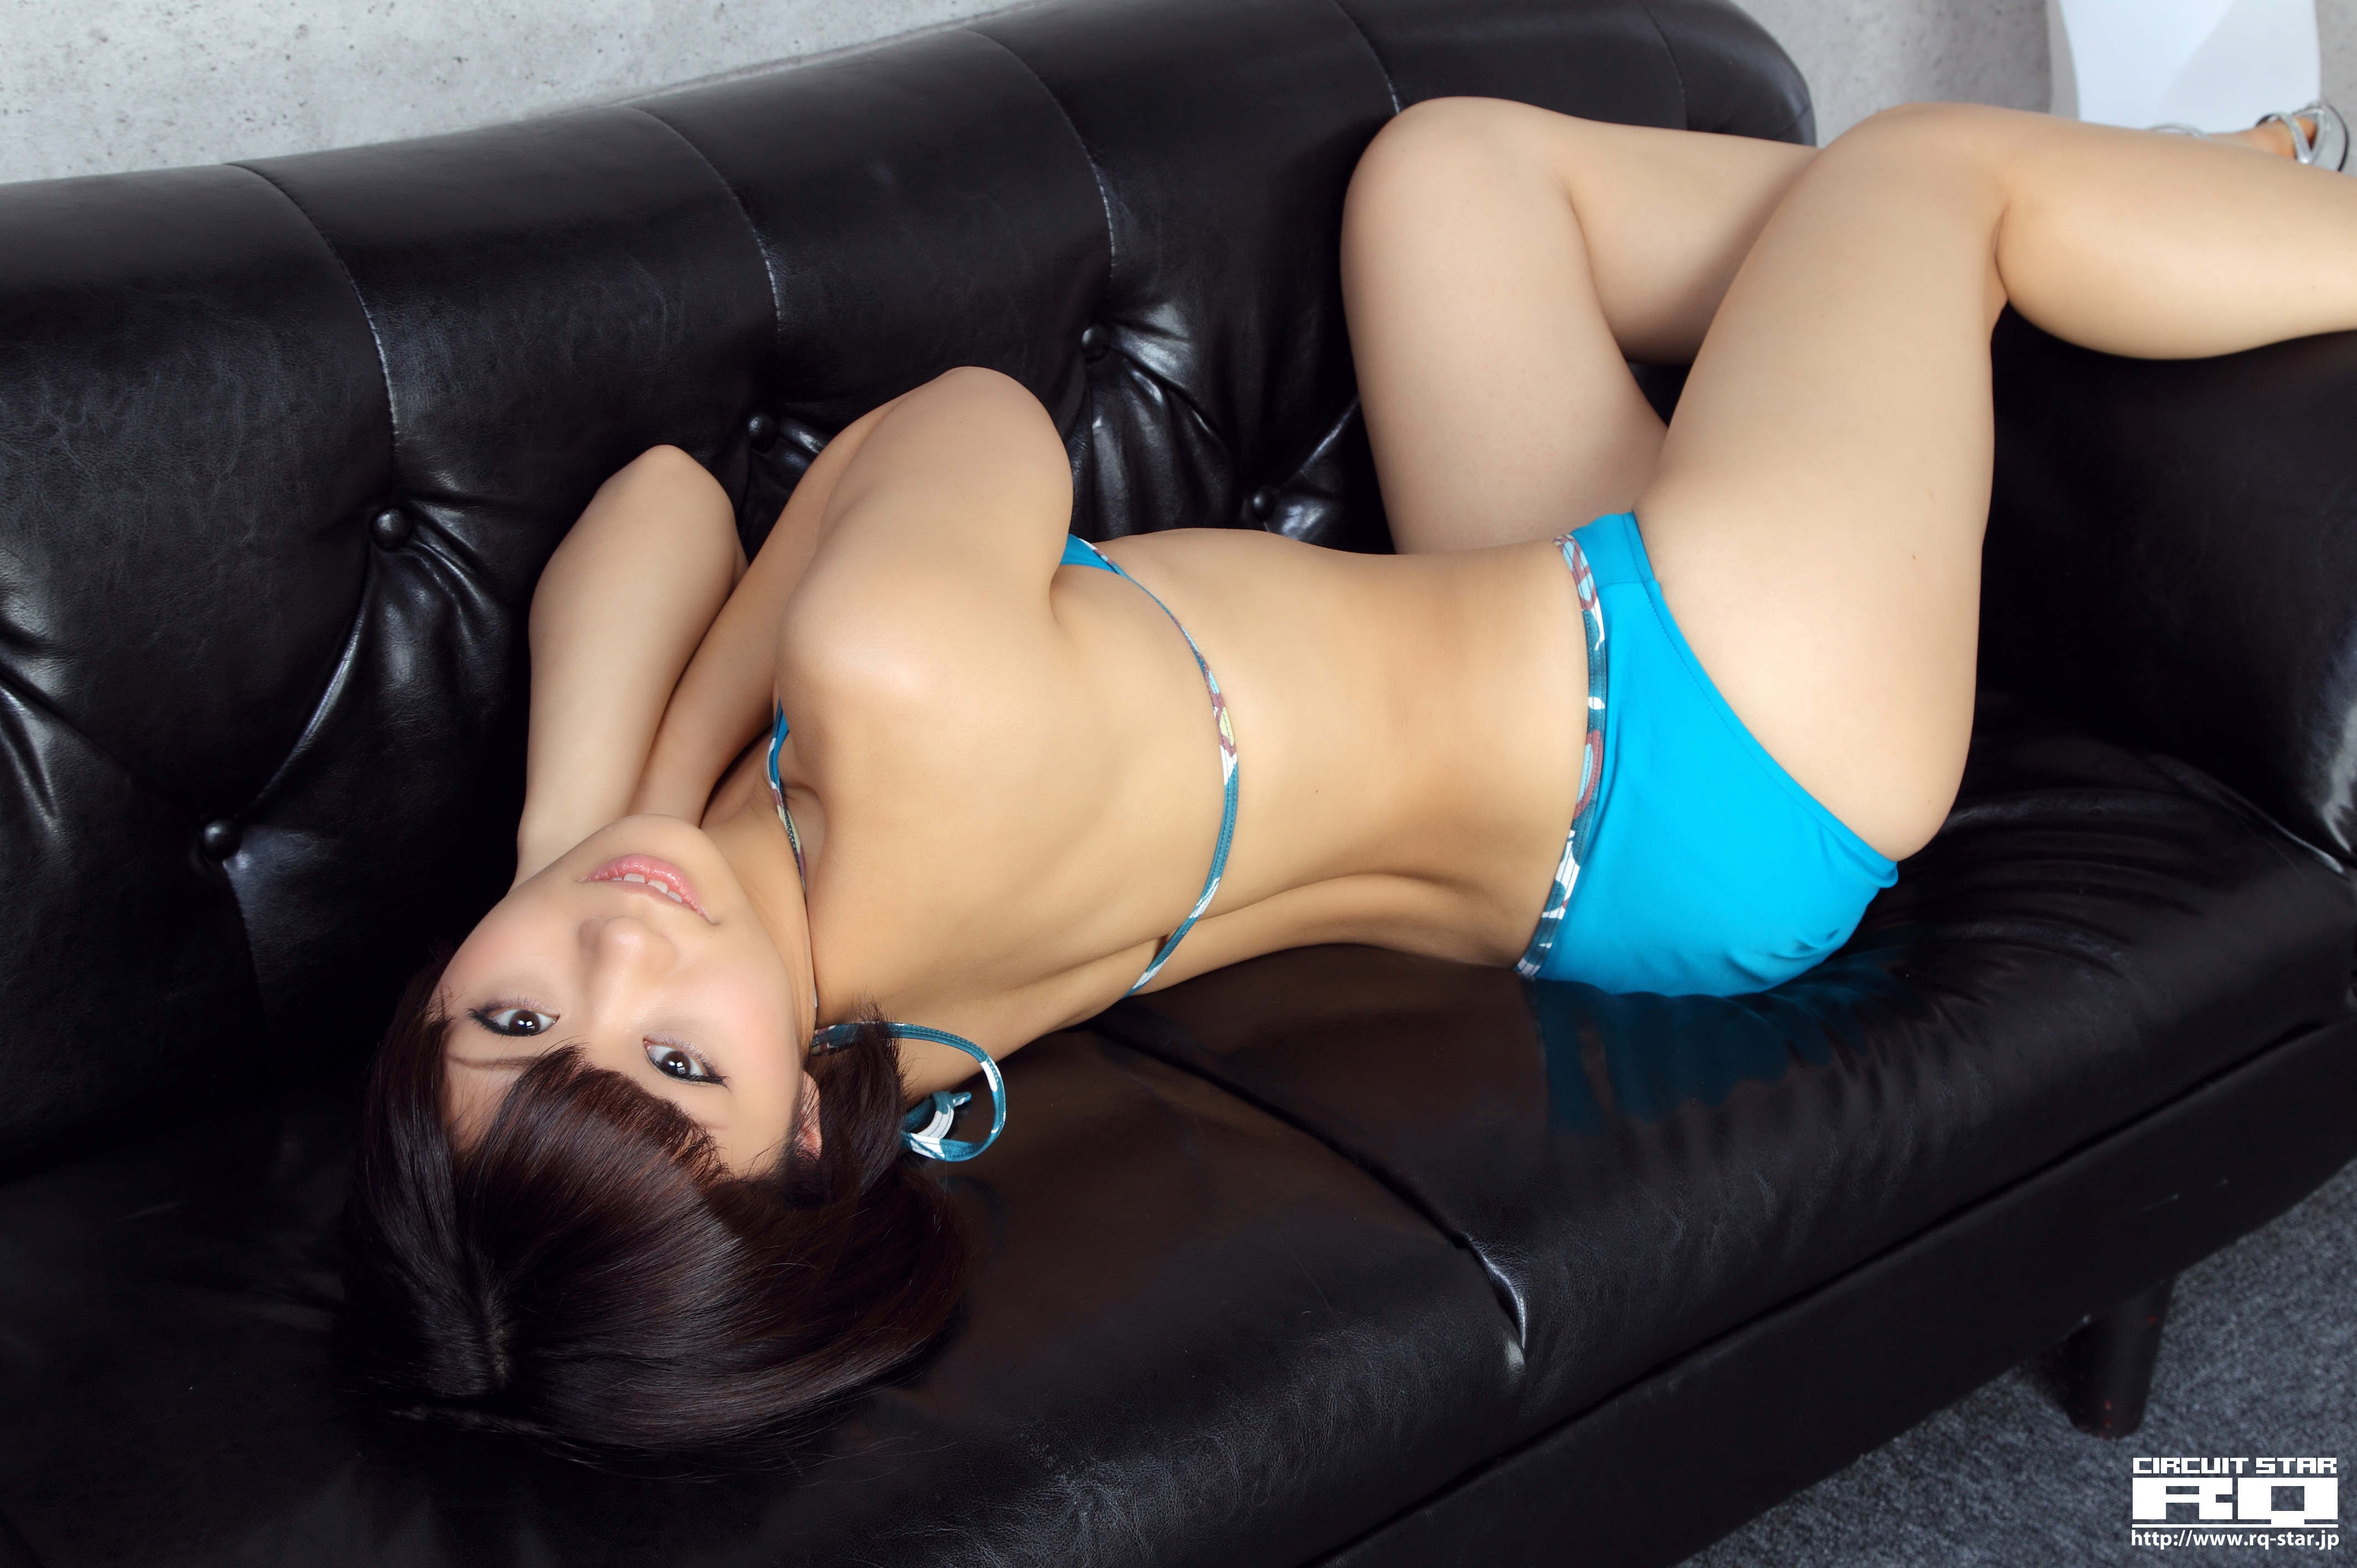 Hentai lregnant orc babies erotica hairy chicks